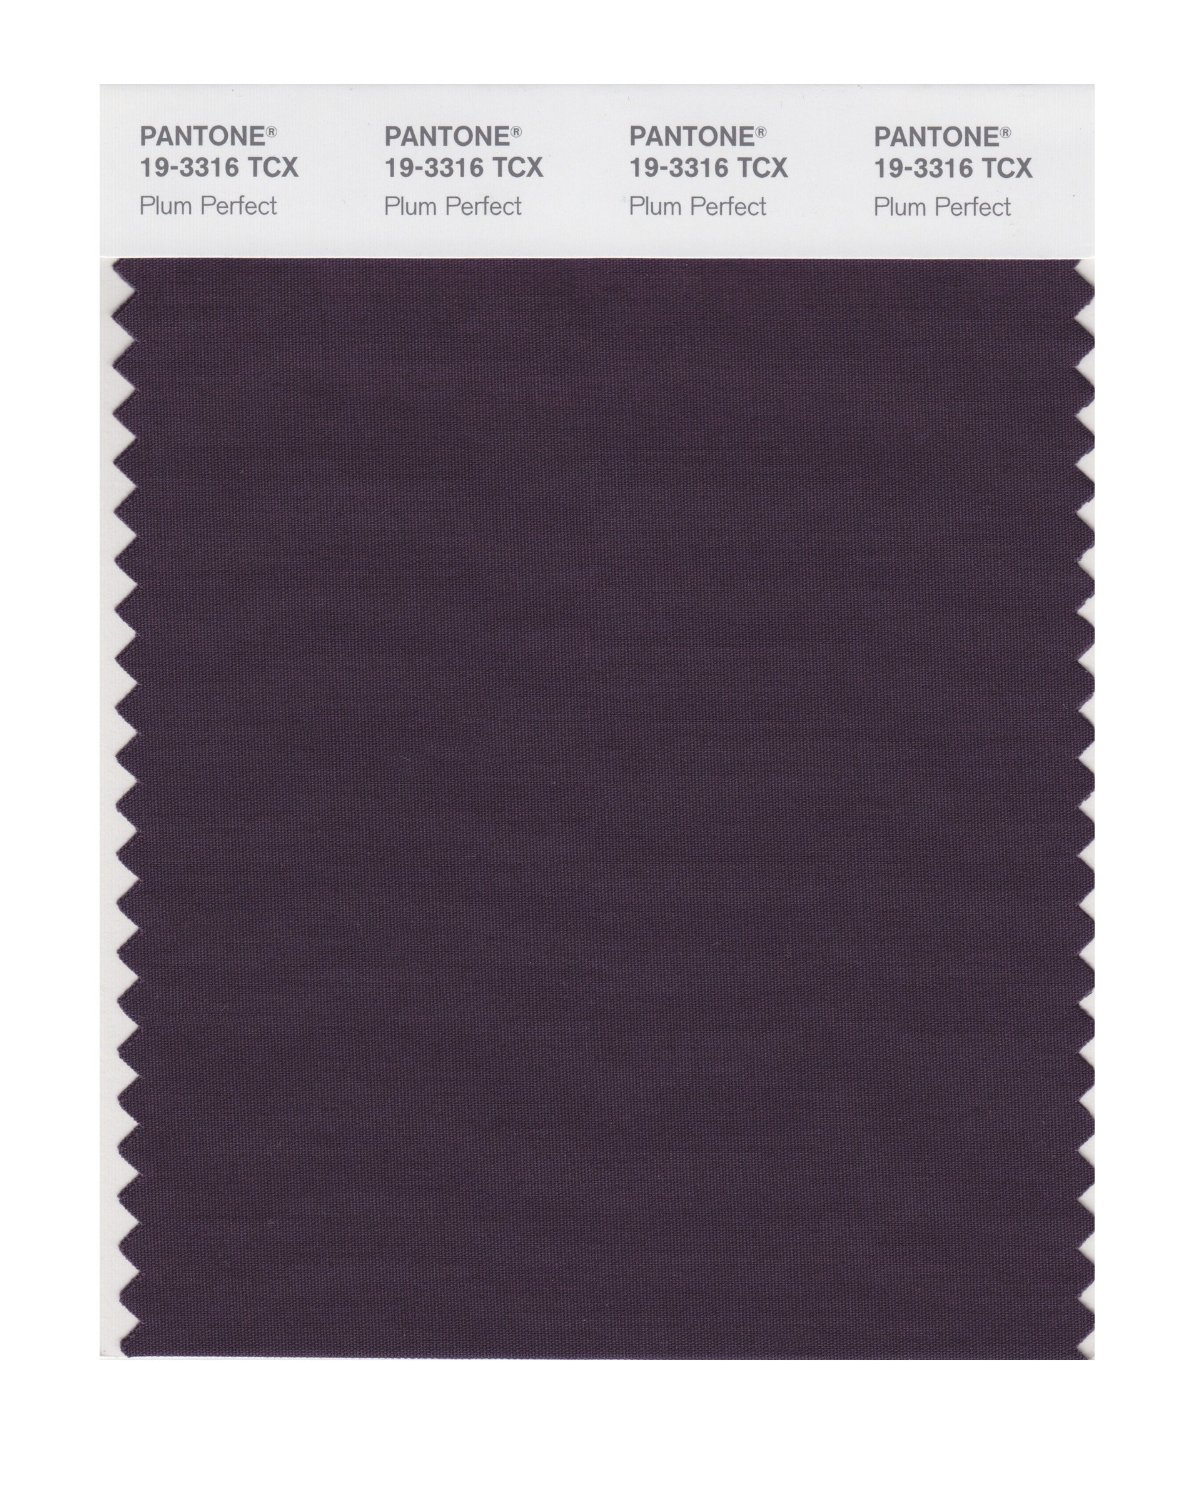 Pantone Smart Swatch 19-3316 Plum Perfect